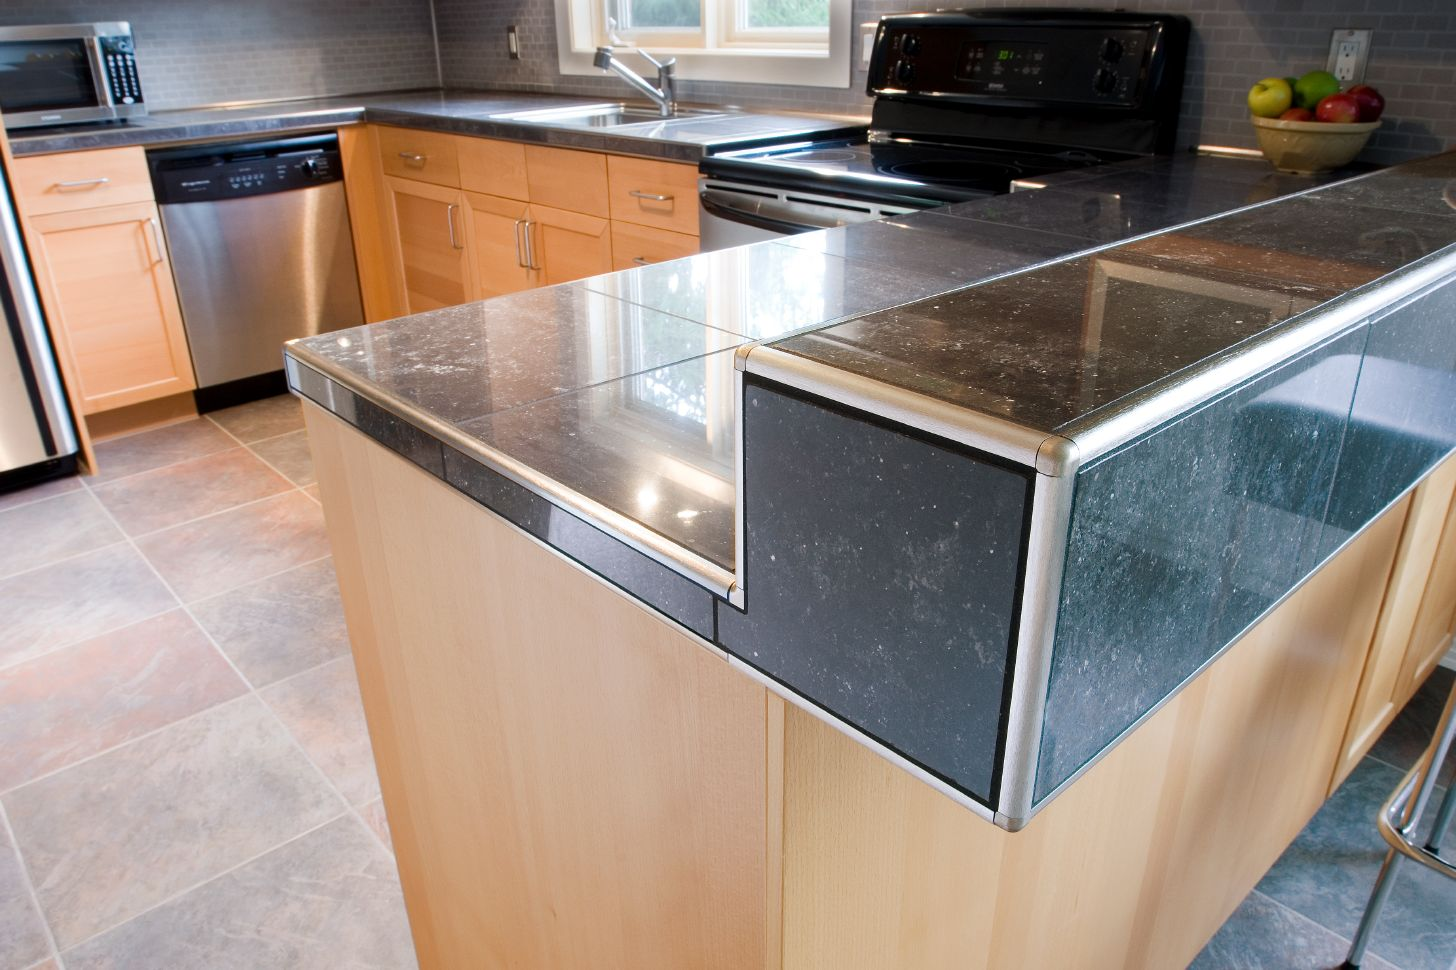 granite contemporary countertop material most countertops cabinet cool full top stone ideas tile and renovation cheap quartz pictures tops edges new kitchen prices of durable affordable bullnose edge popular size options